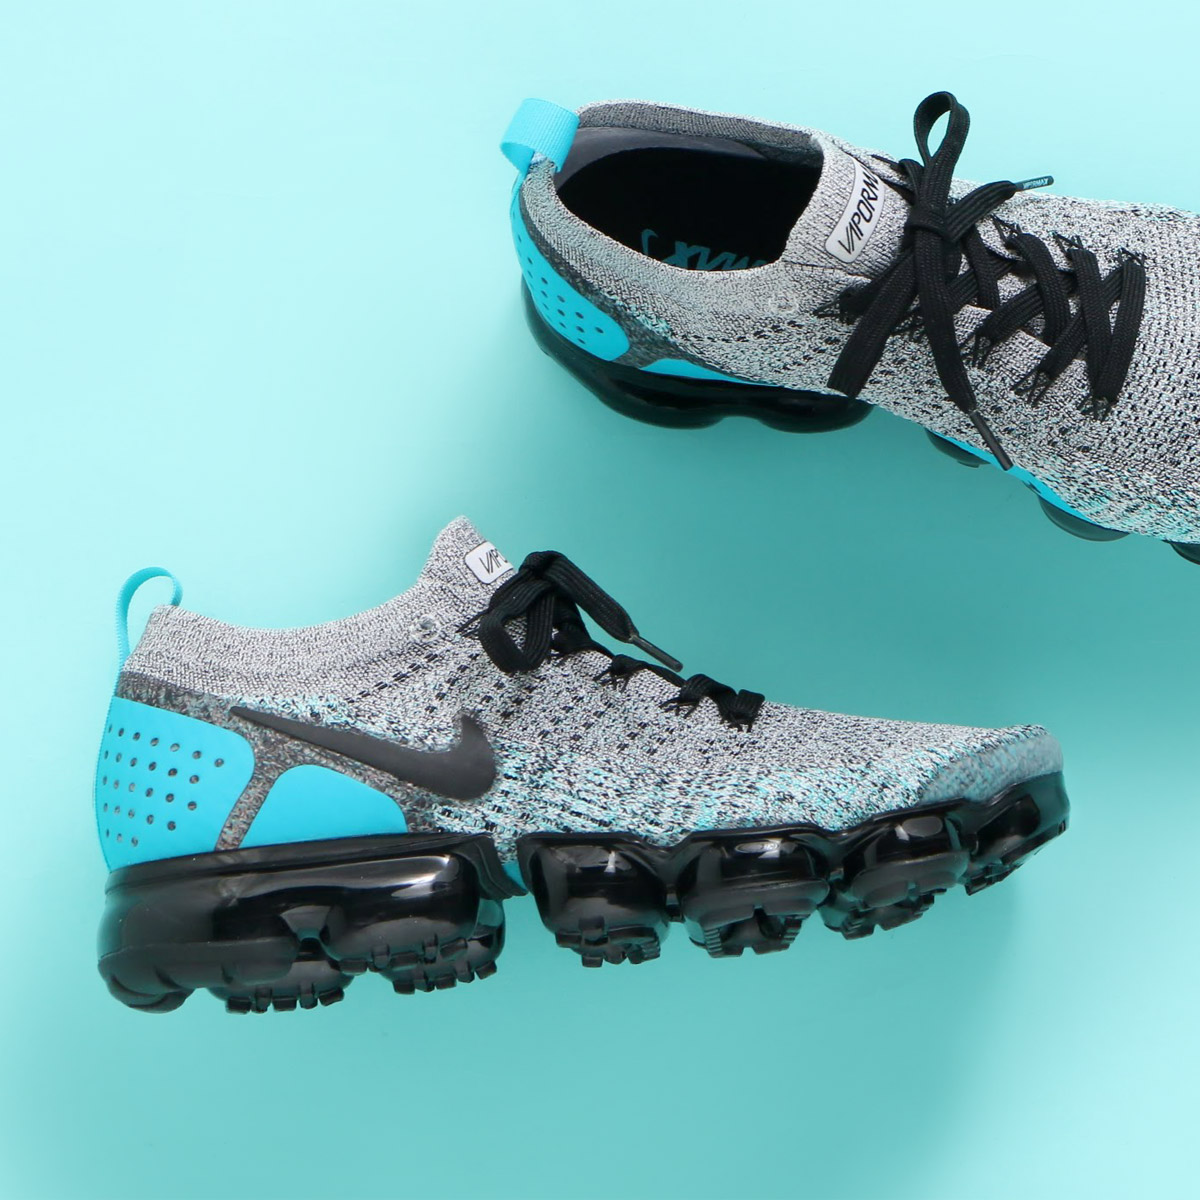 396608d4a5e6 スニーカー ナイキ WHITE NIKE AIR VAPORMAX FLYKNIT 2 BLACK 2 × フライニット 限定 ヴェイパーマックス  ...